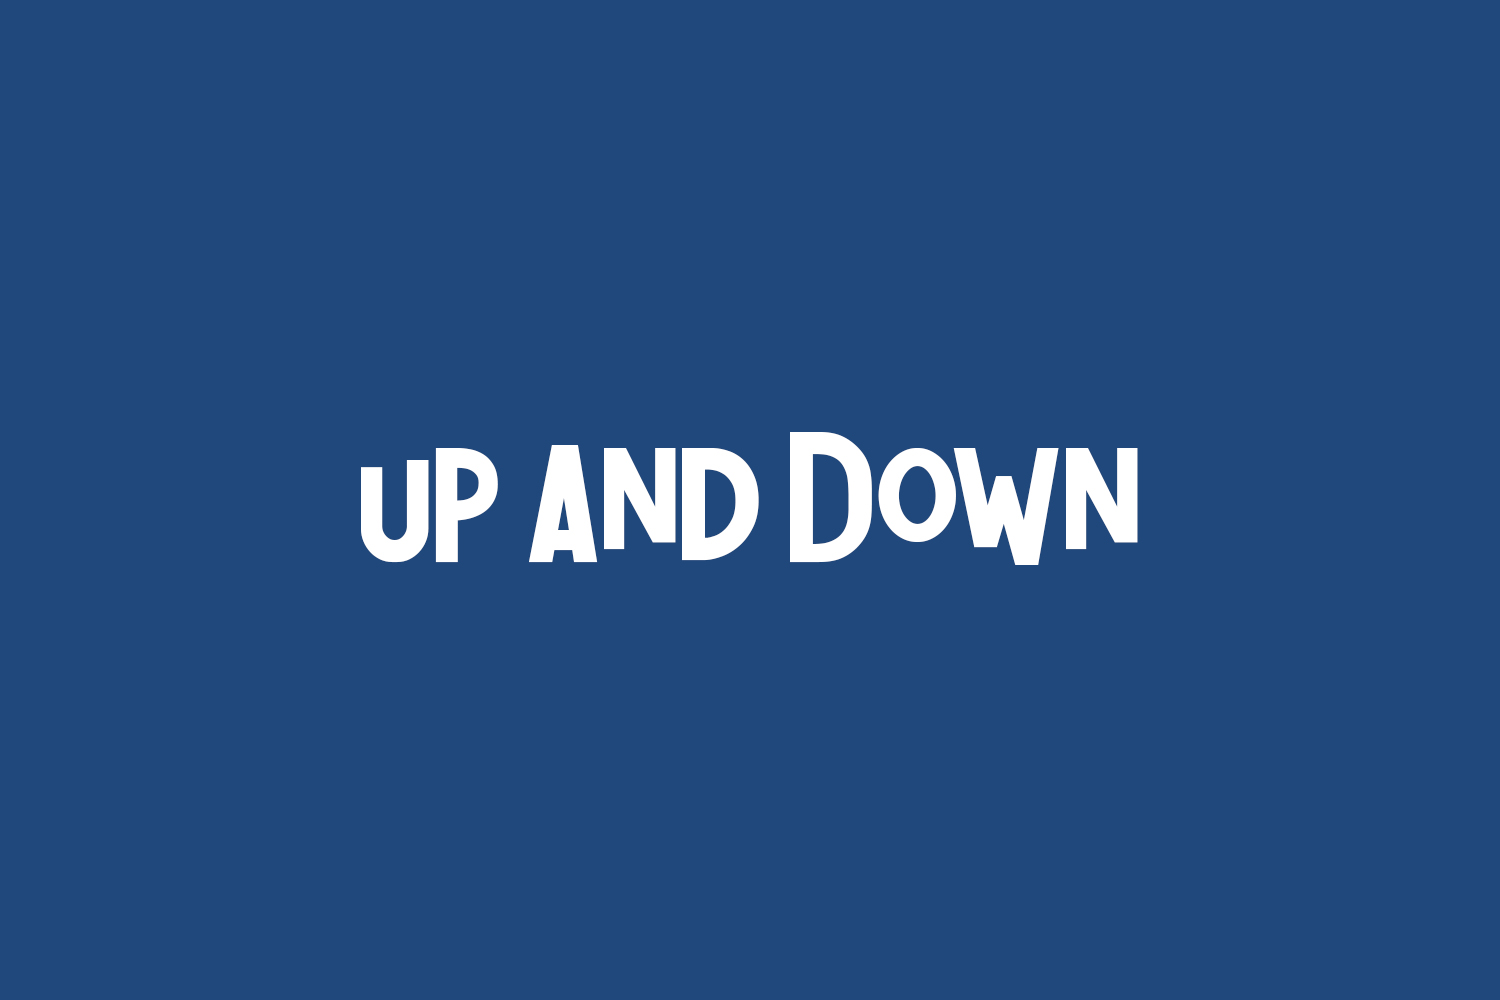 Up And Down Free Font